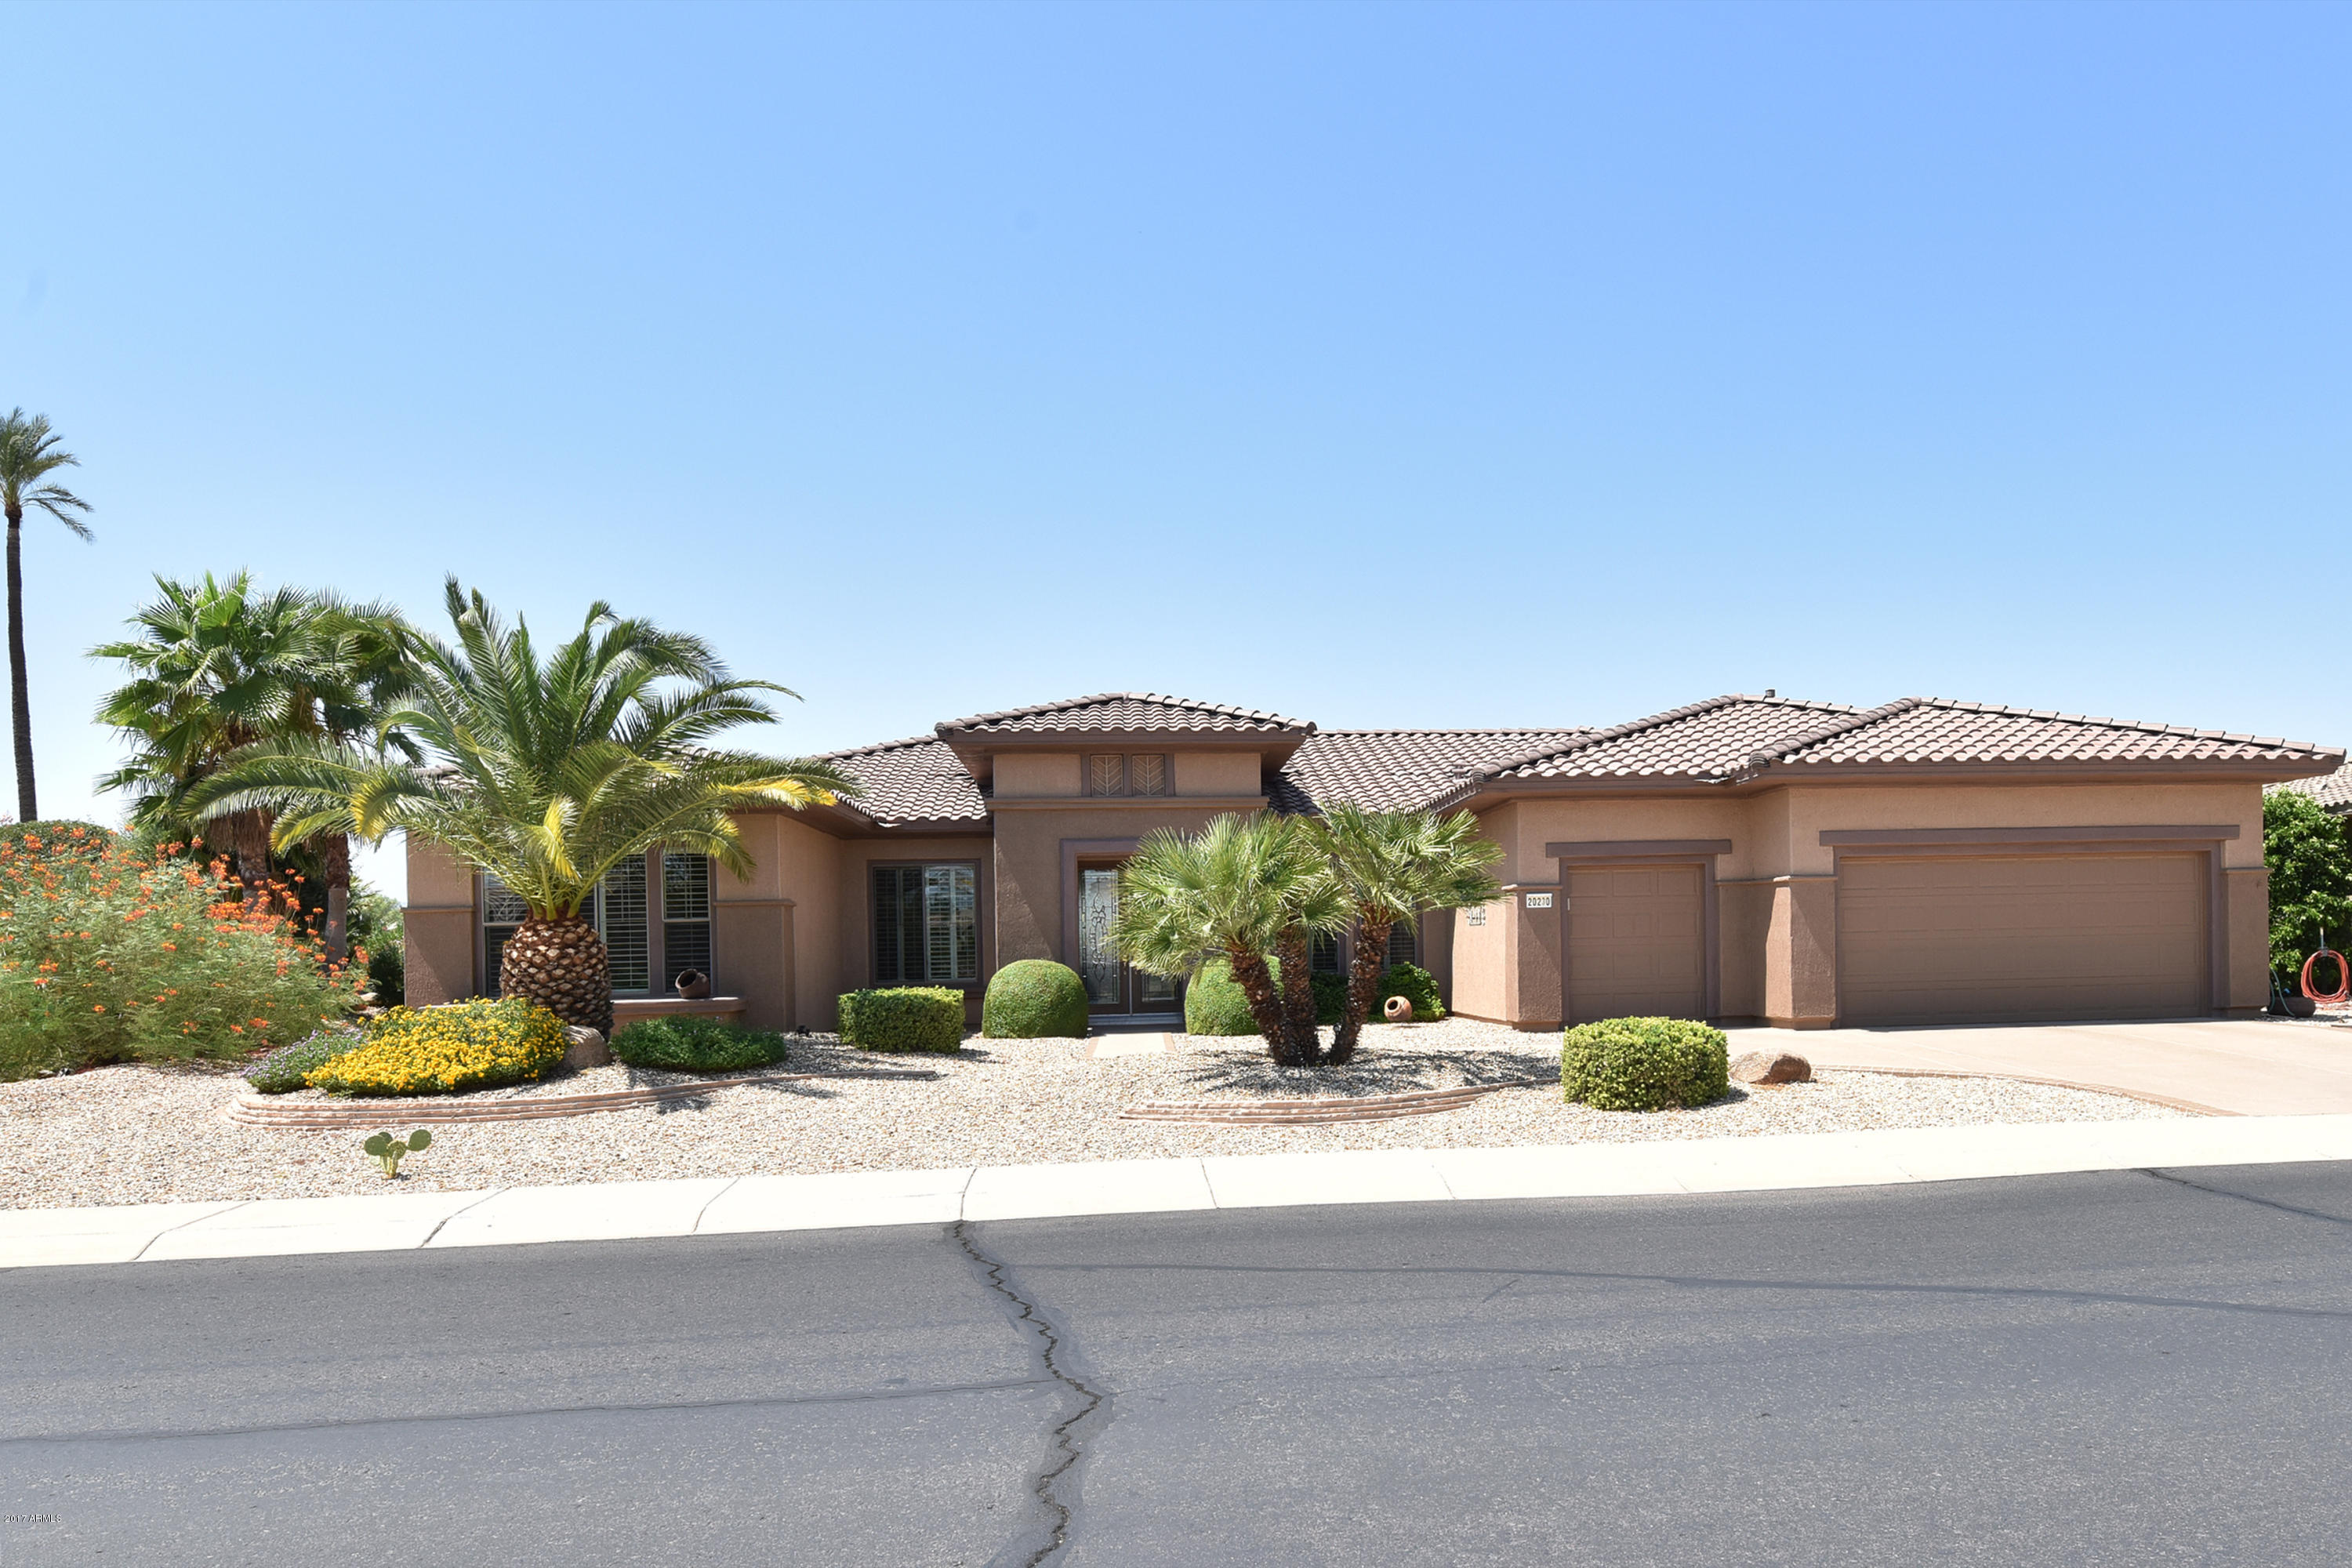 20230 N CACTUS GARDEN TRAIL, SURPRISE, AZ 85387